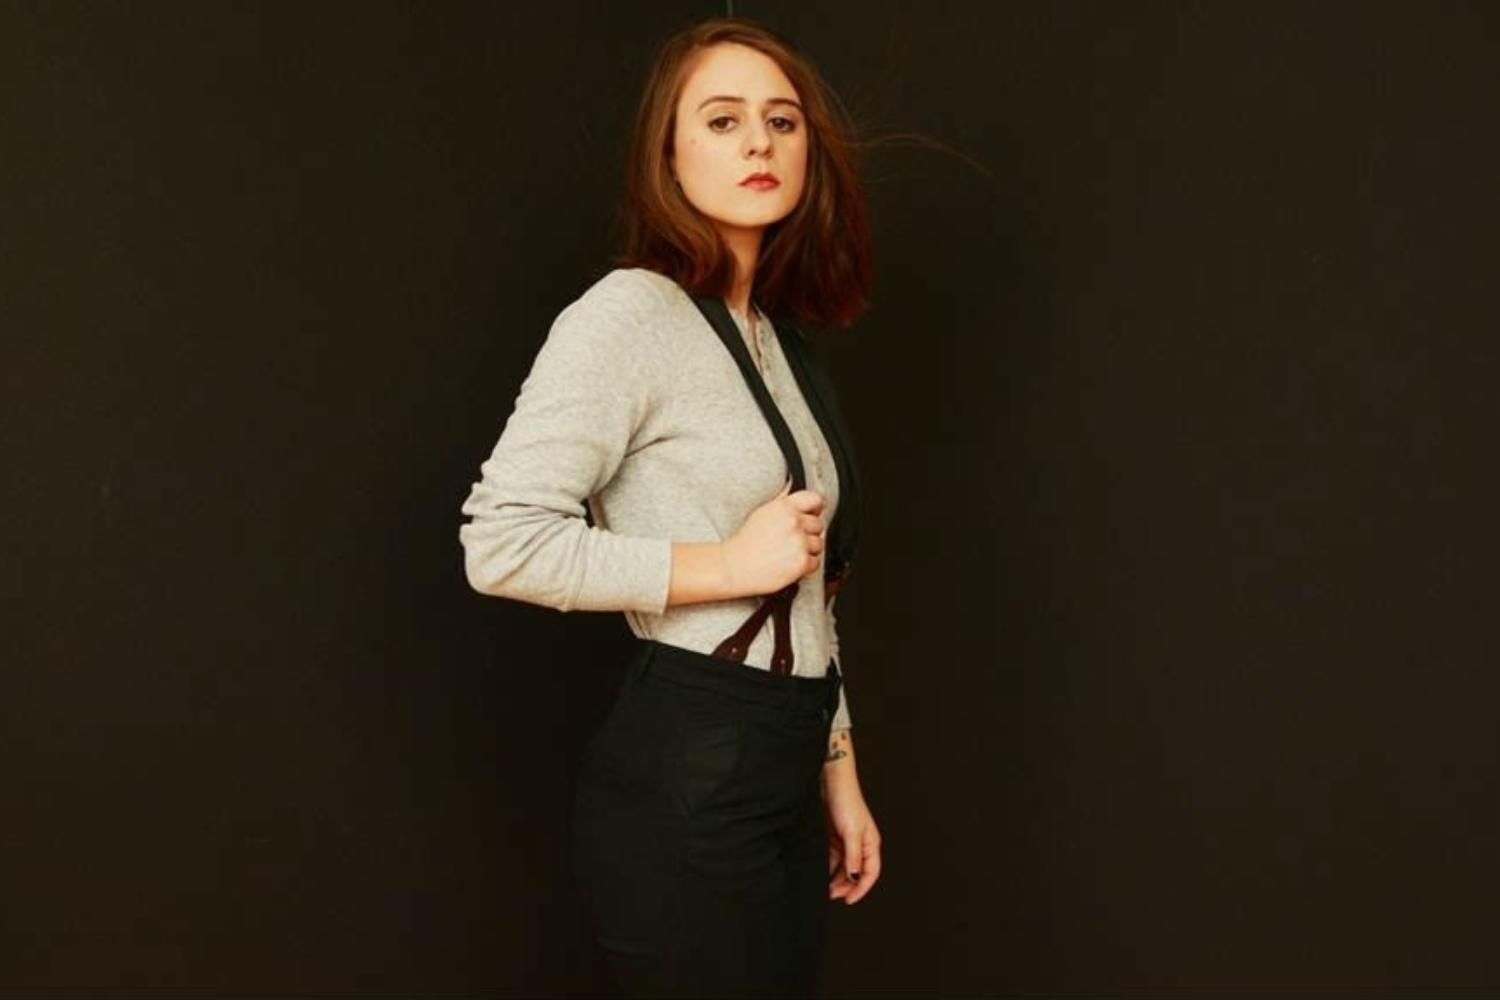 Tancred announces new album 'Nightstand'